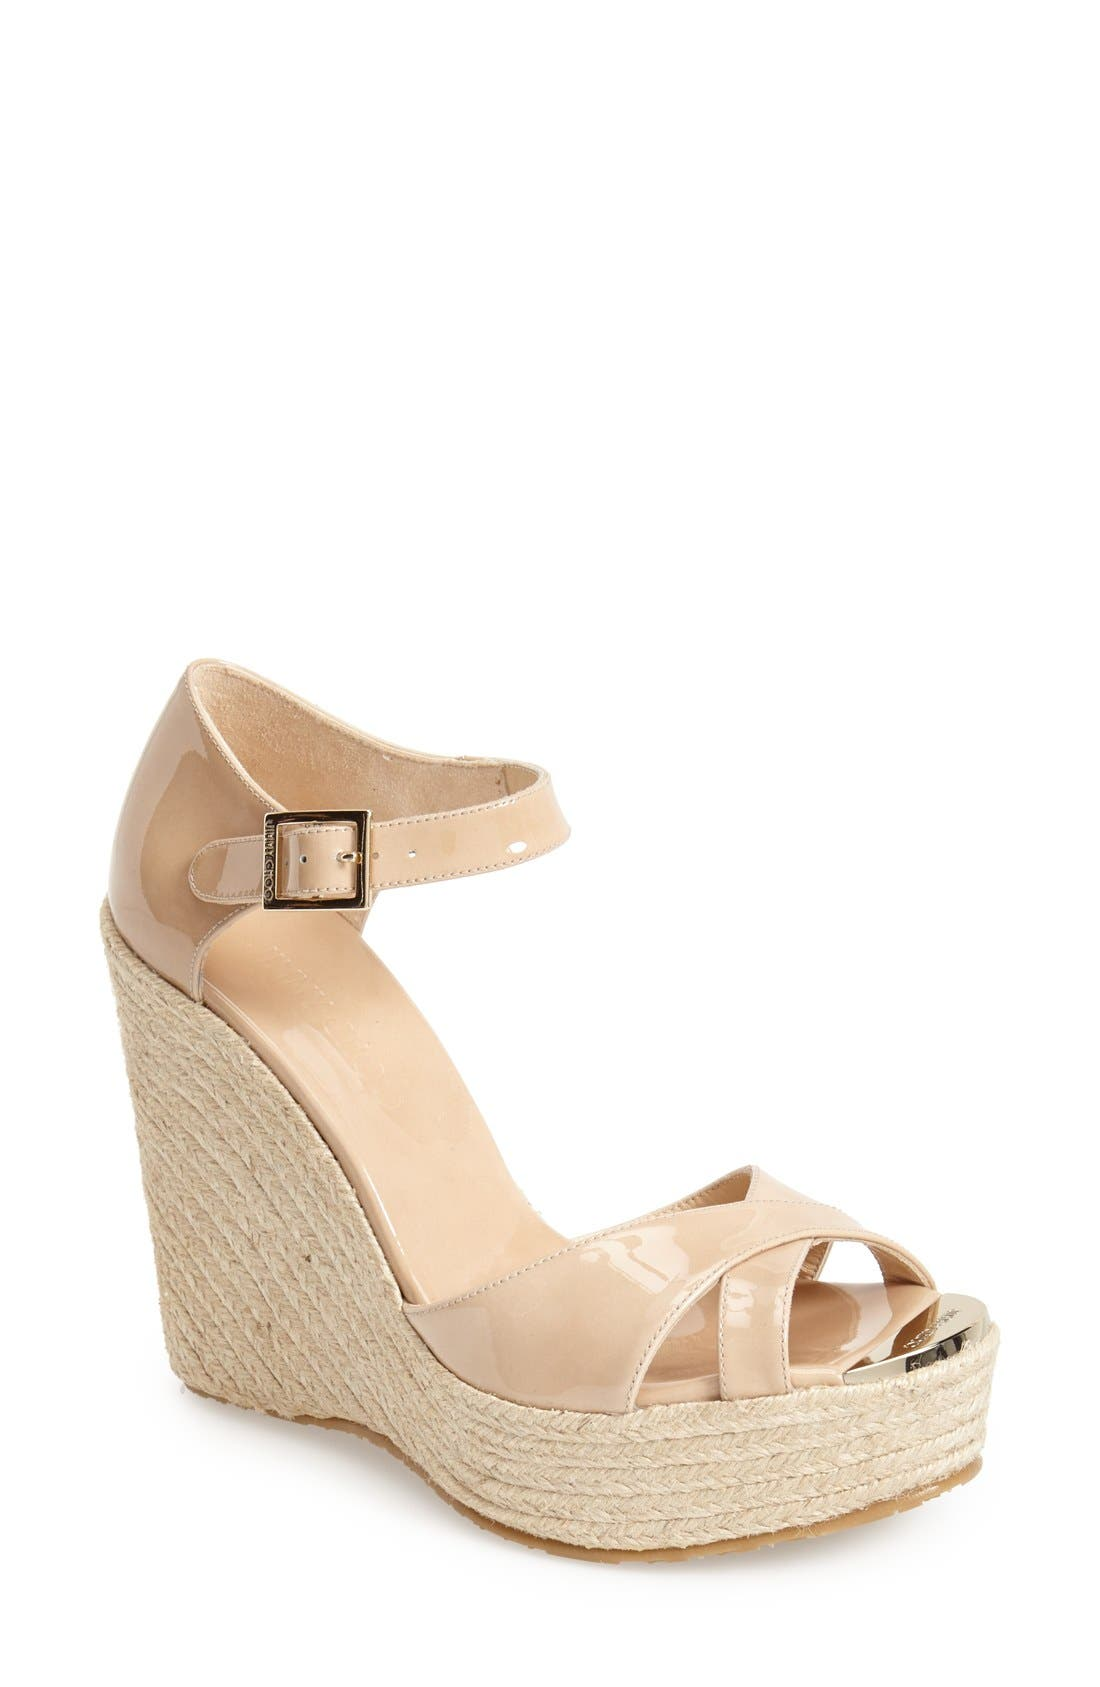 Alternate Image 1 Selected - Jimmy Choo 'Pallis' Wedge Sandal (Nordstrom Exclusive)